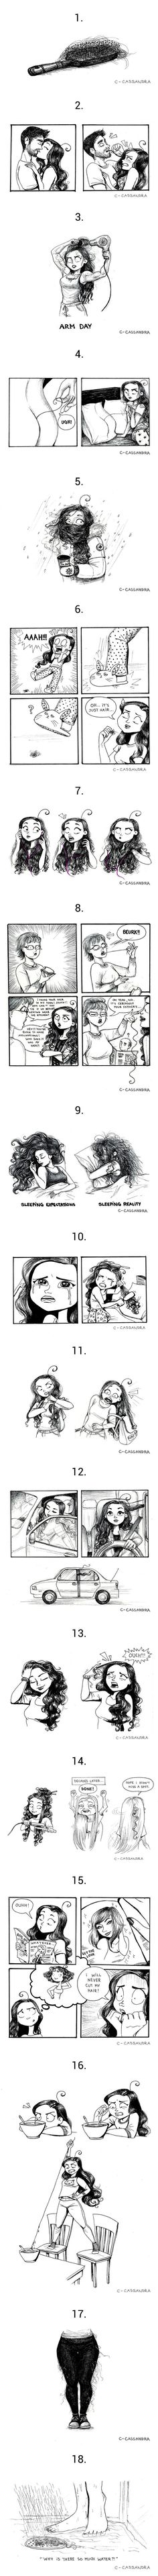 18 Painful Truths About Having Long Hair (by Cassandra Calin) Haha most of these apply! This is great, Cassandra Calin Cassandra Calin, C Cassandra, Girls Problems, Funny Cute, The Funny, Hilarious, Rage Comic, Curly Hair Problems, Funny Illustration